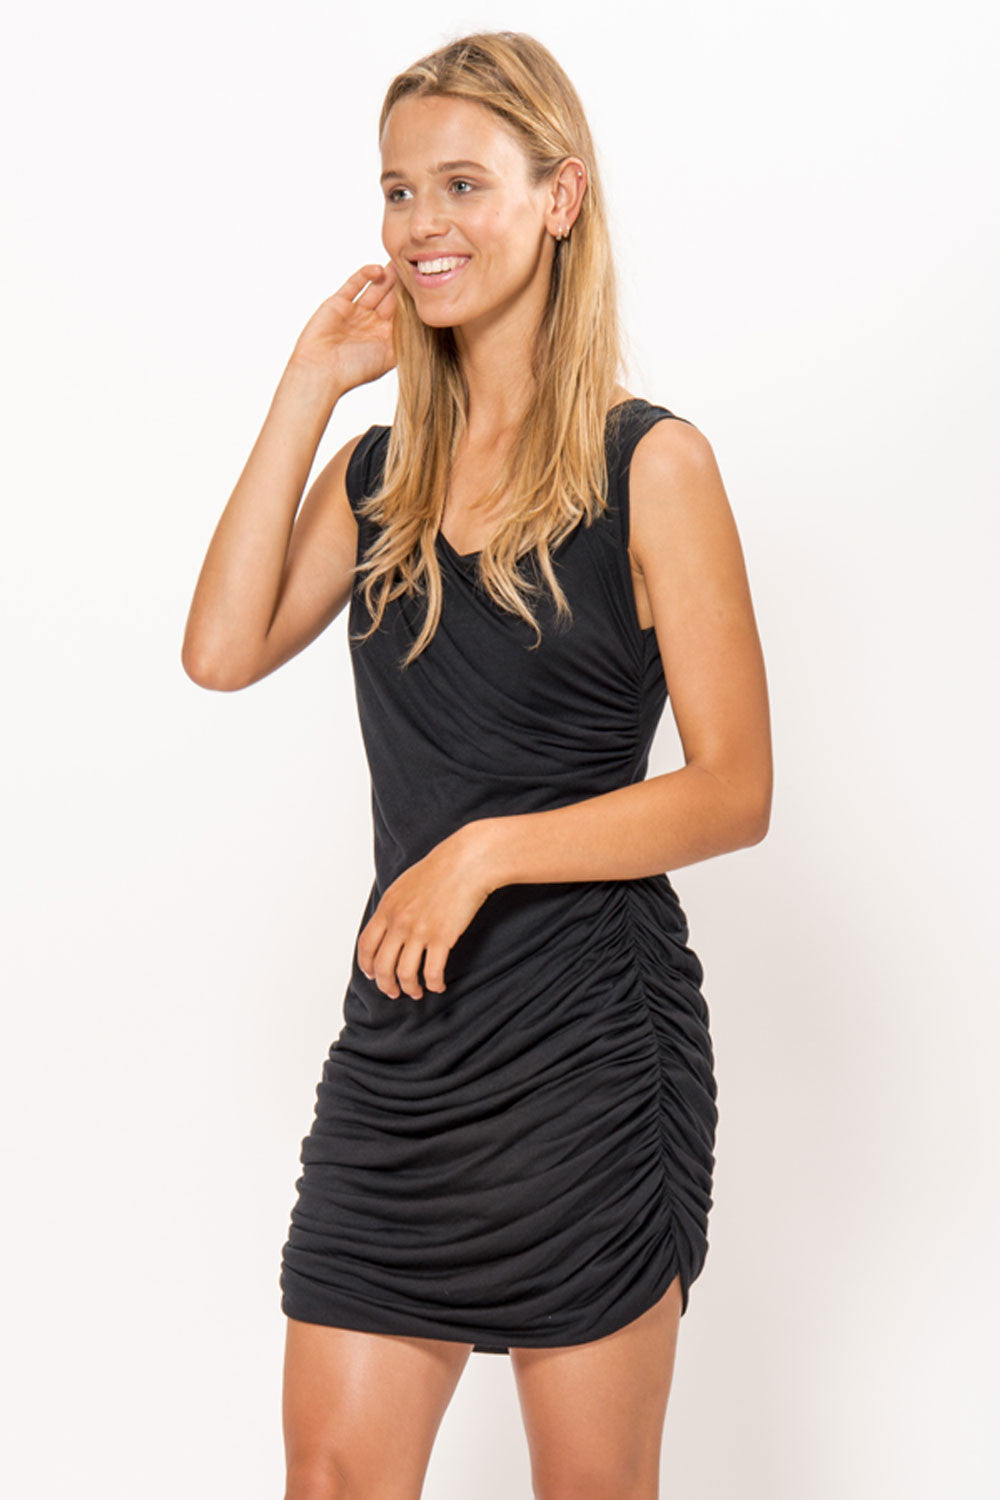 Shirred Black Dress - Primary New York